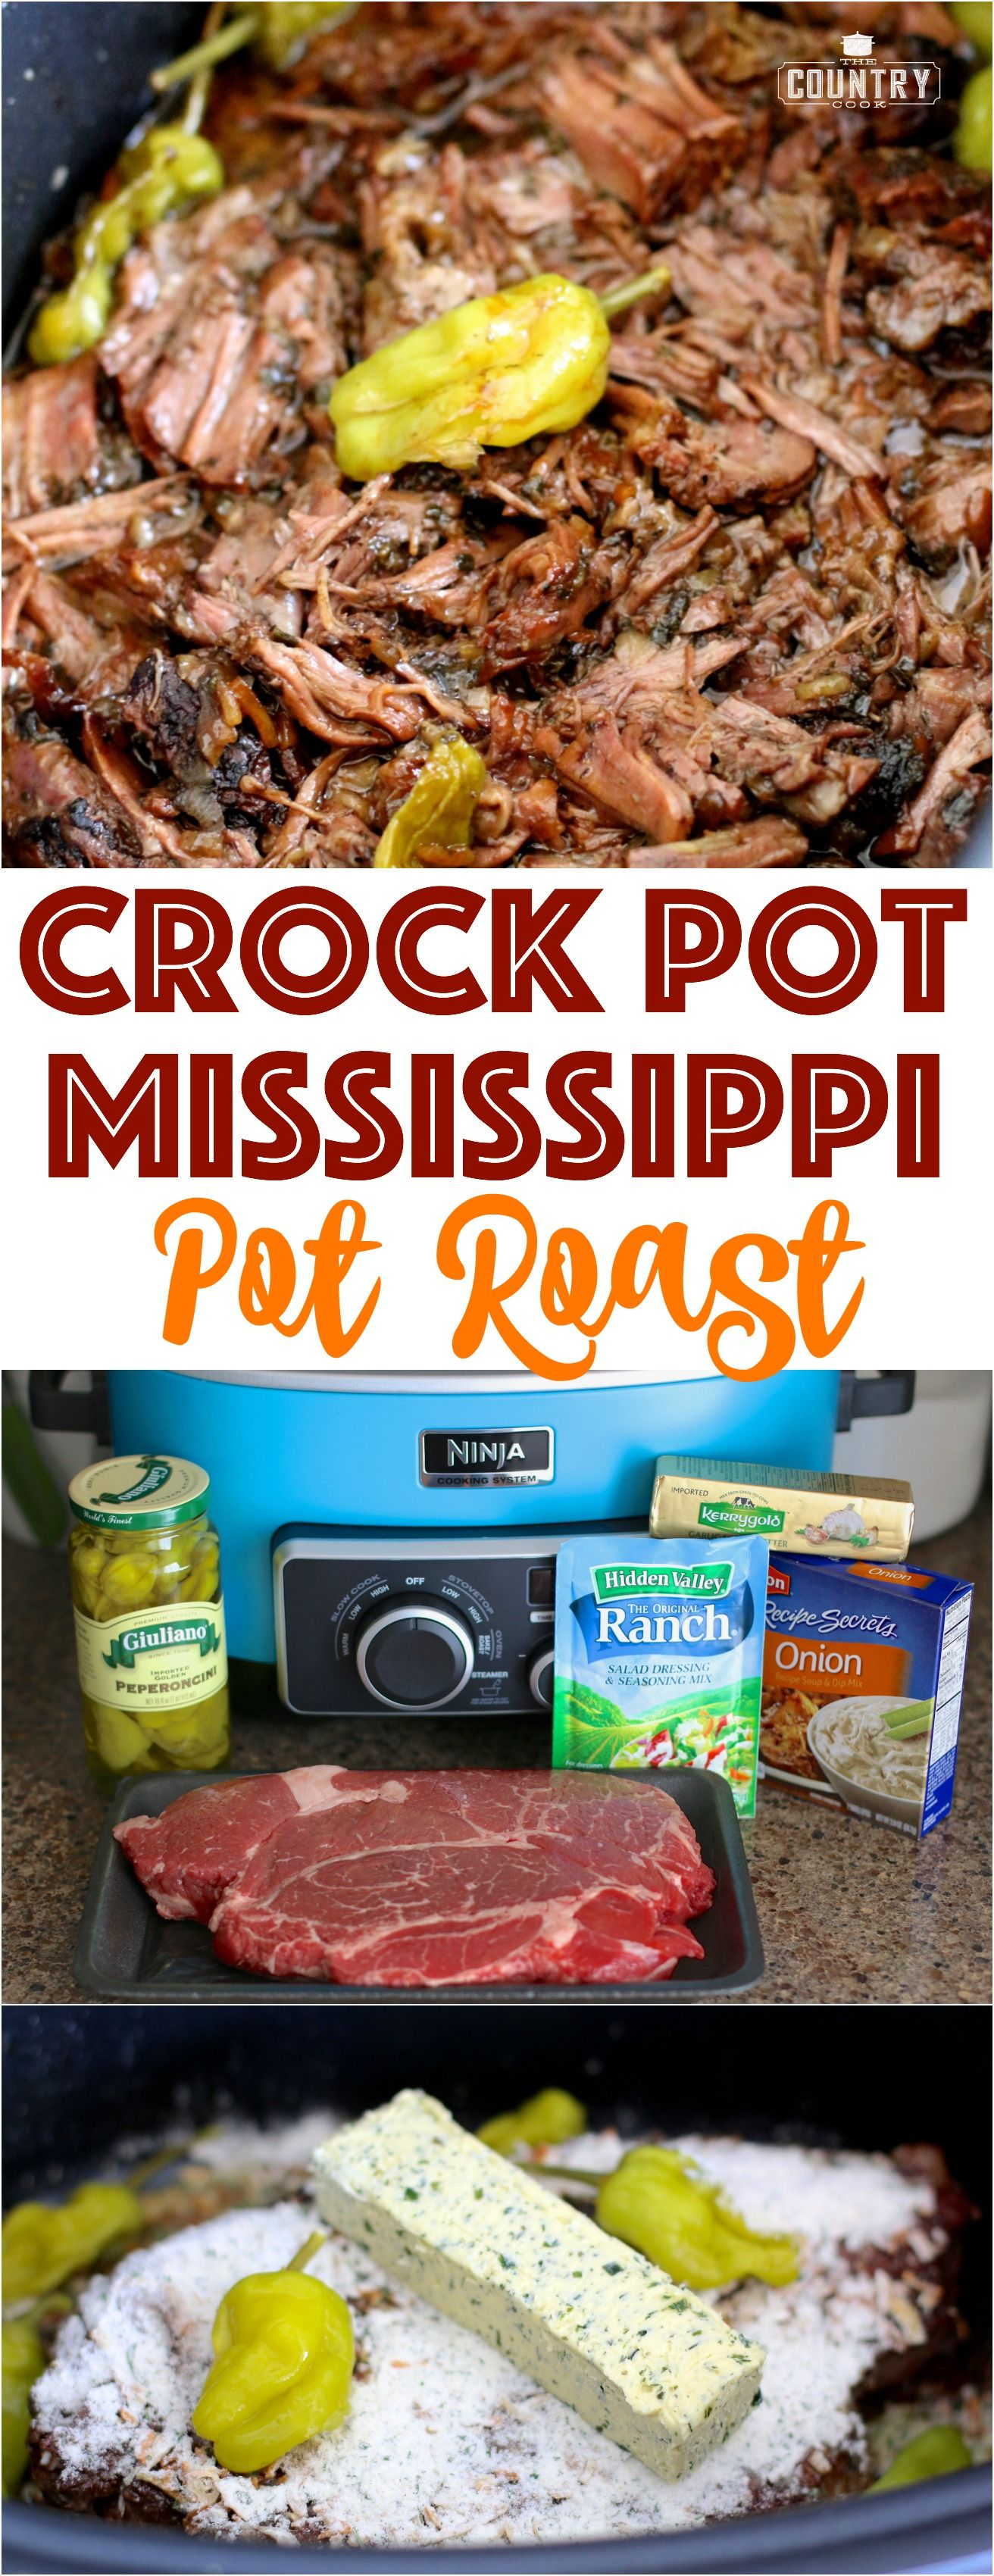 Crock Pot Mississippi Pot Roast Video The Country Cook Recipe Pot Roast Recipes Crockpot Dinner Crockpot Recipes Beef